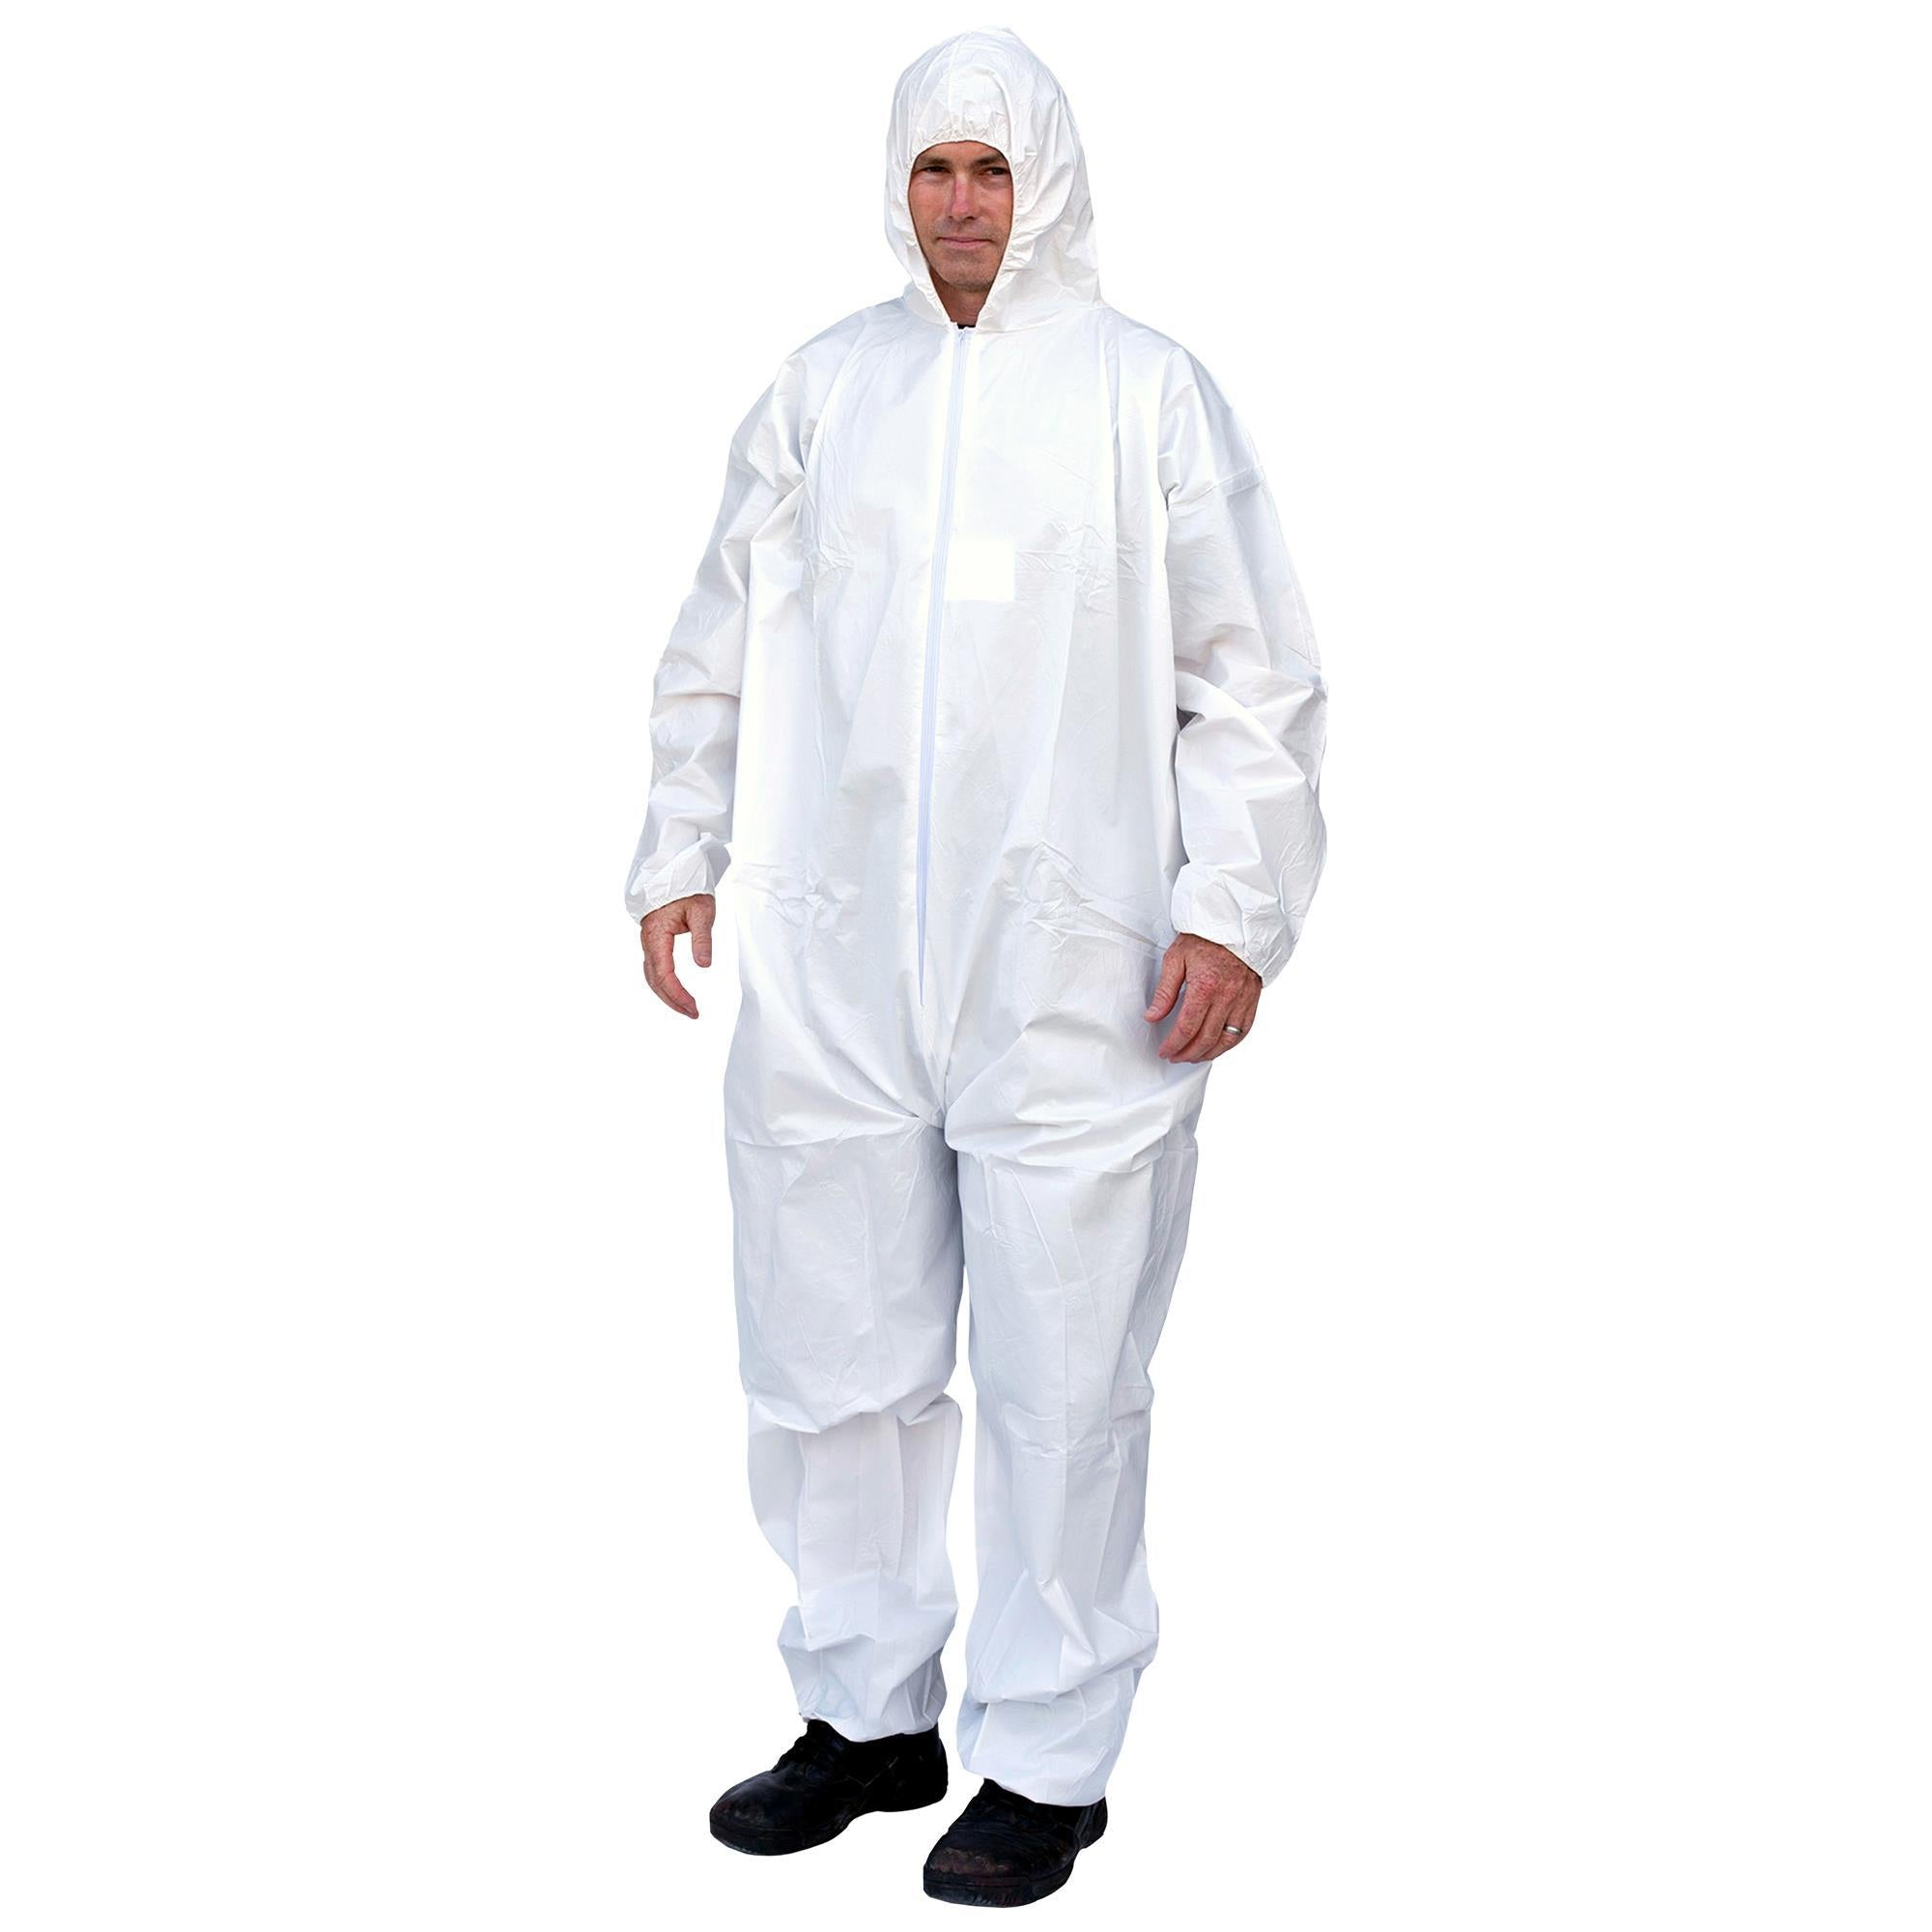 14806 PC127 Hooded Coveralls (includes 25 pair of coveralls)